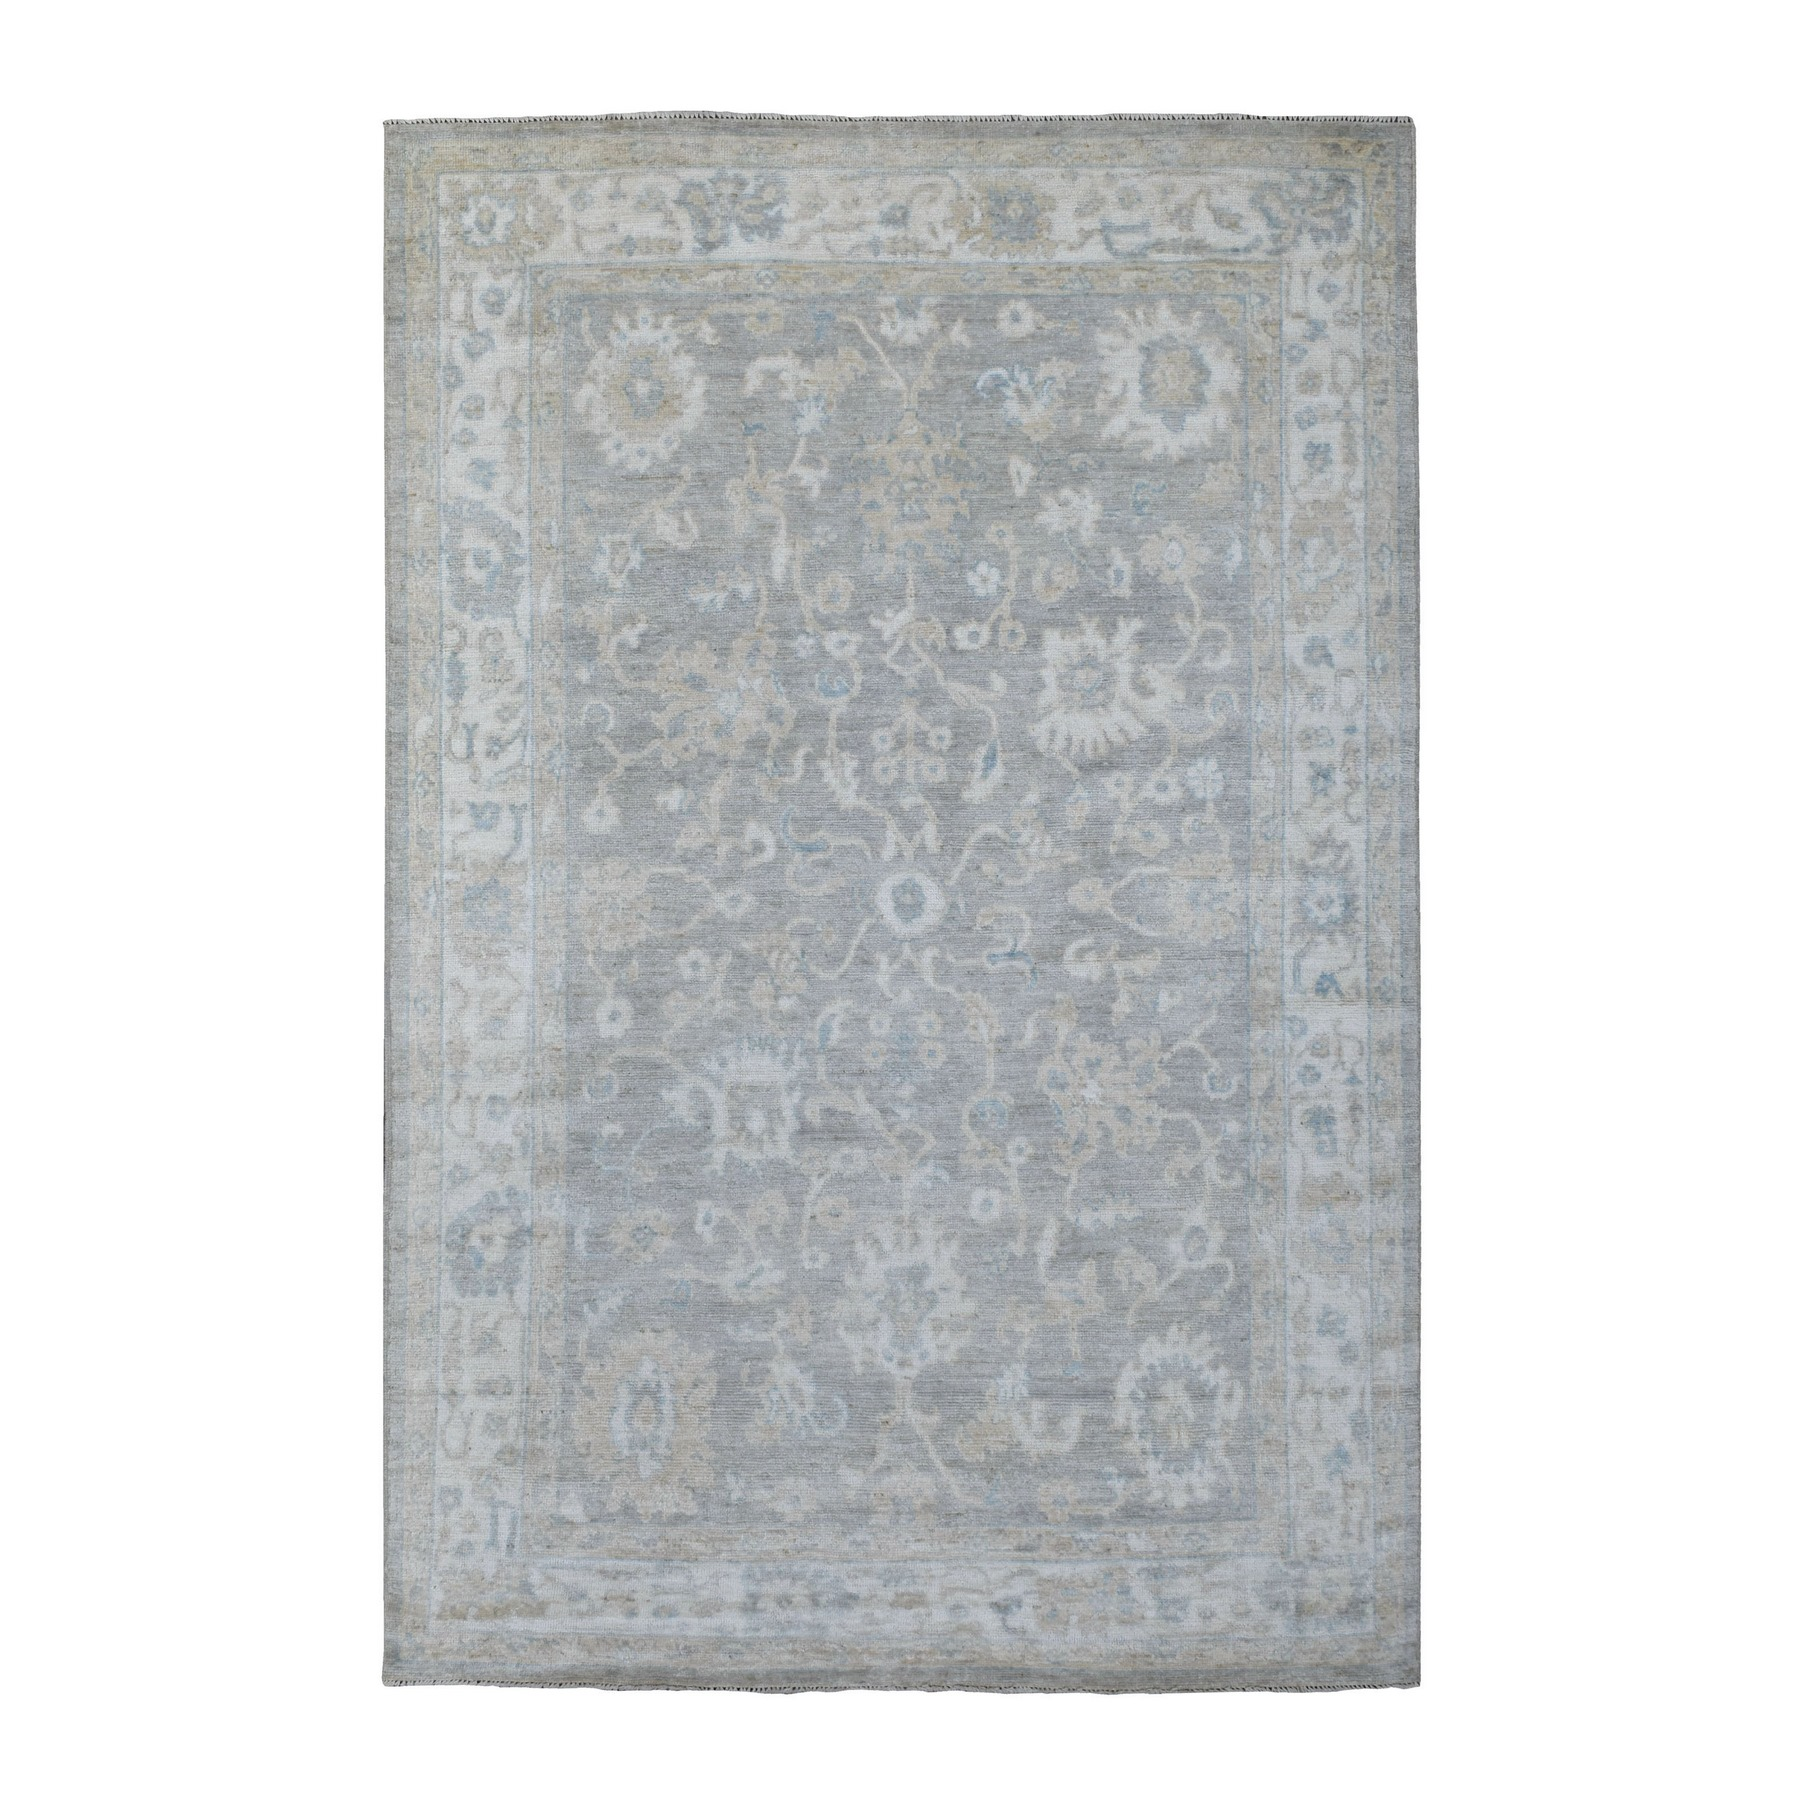 Agra And Turkish Collection Hand Knotted Grey Rug No: 1136284